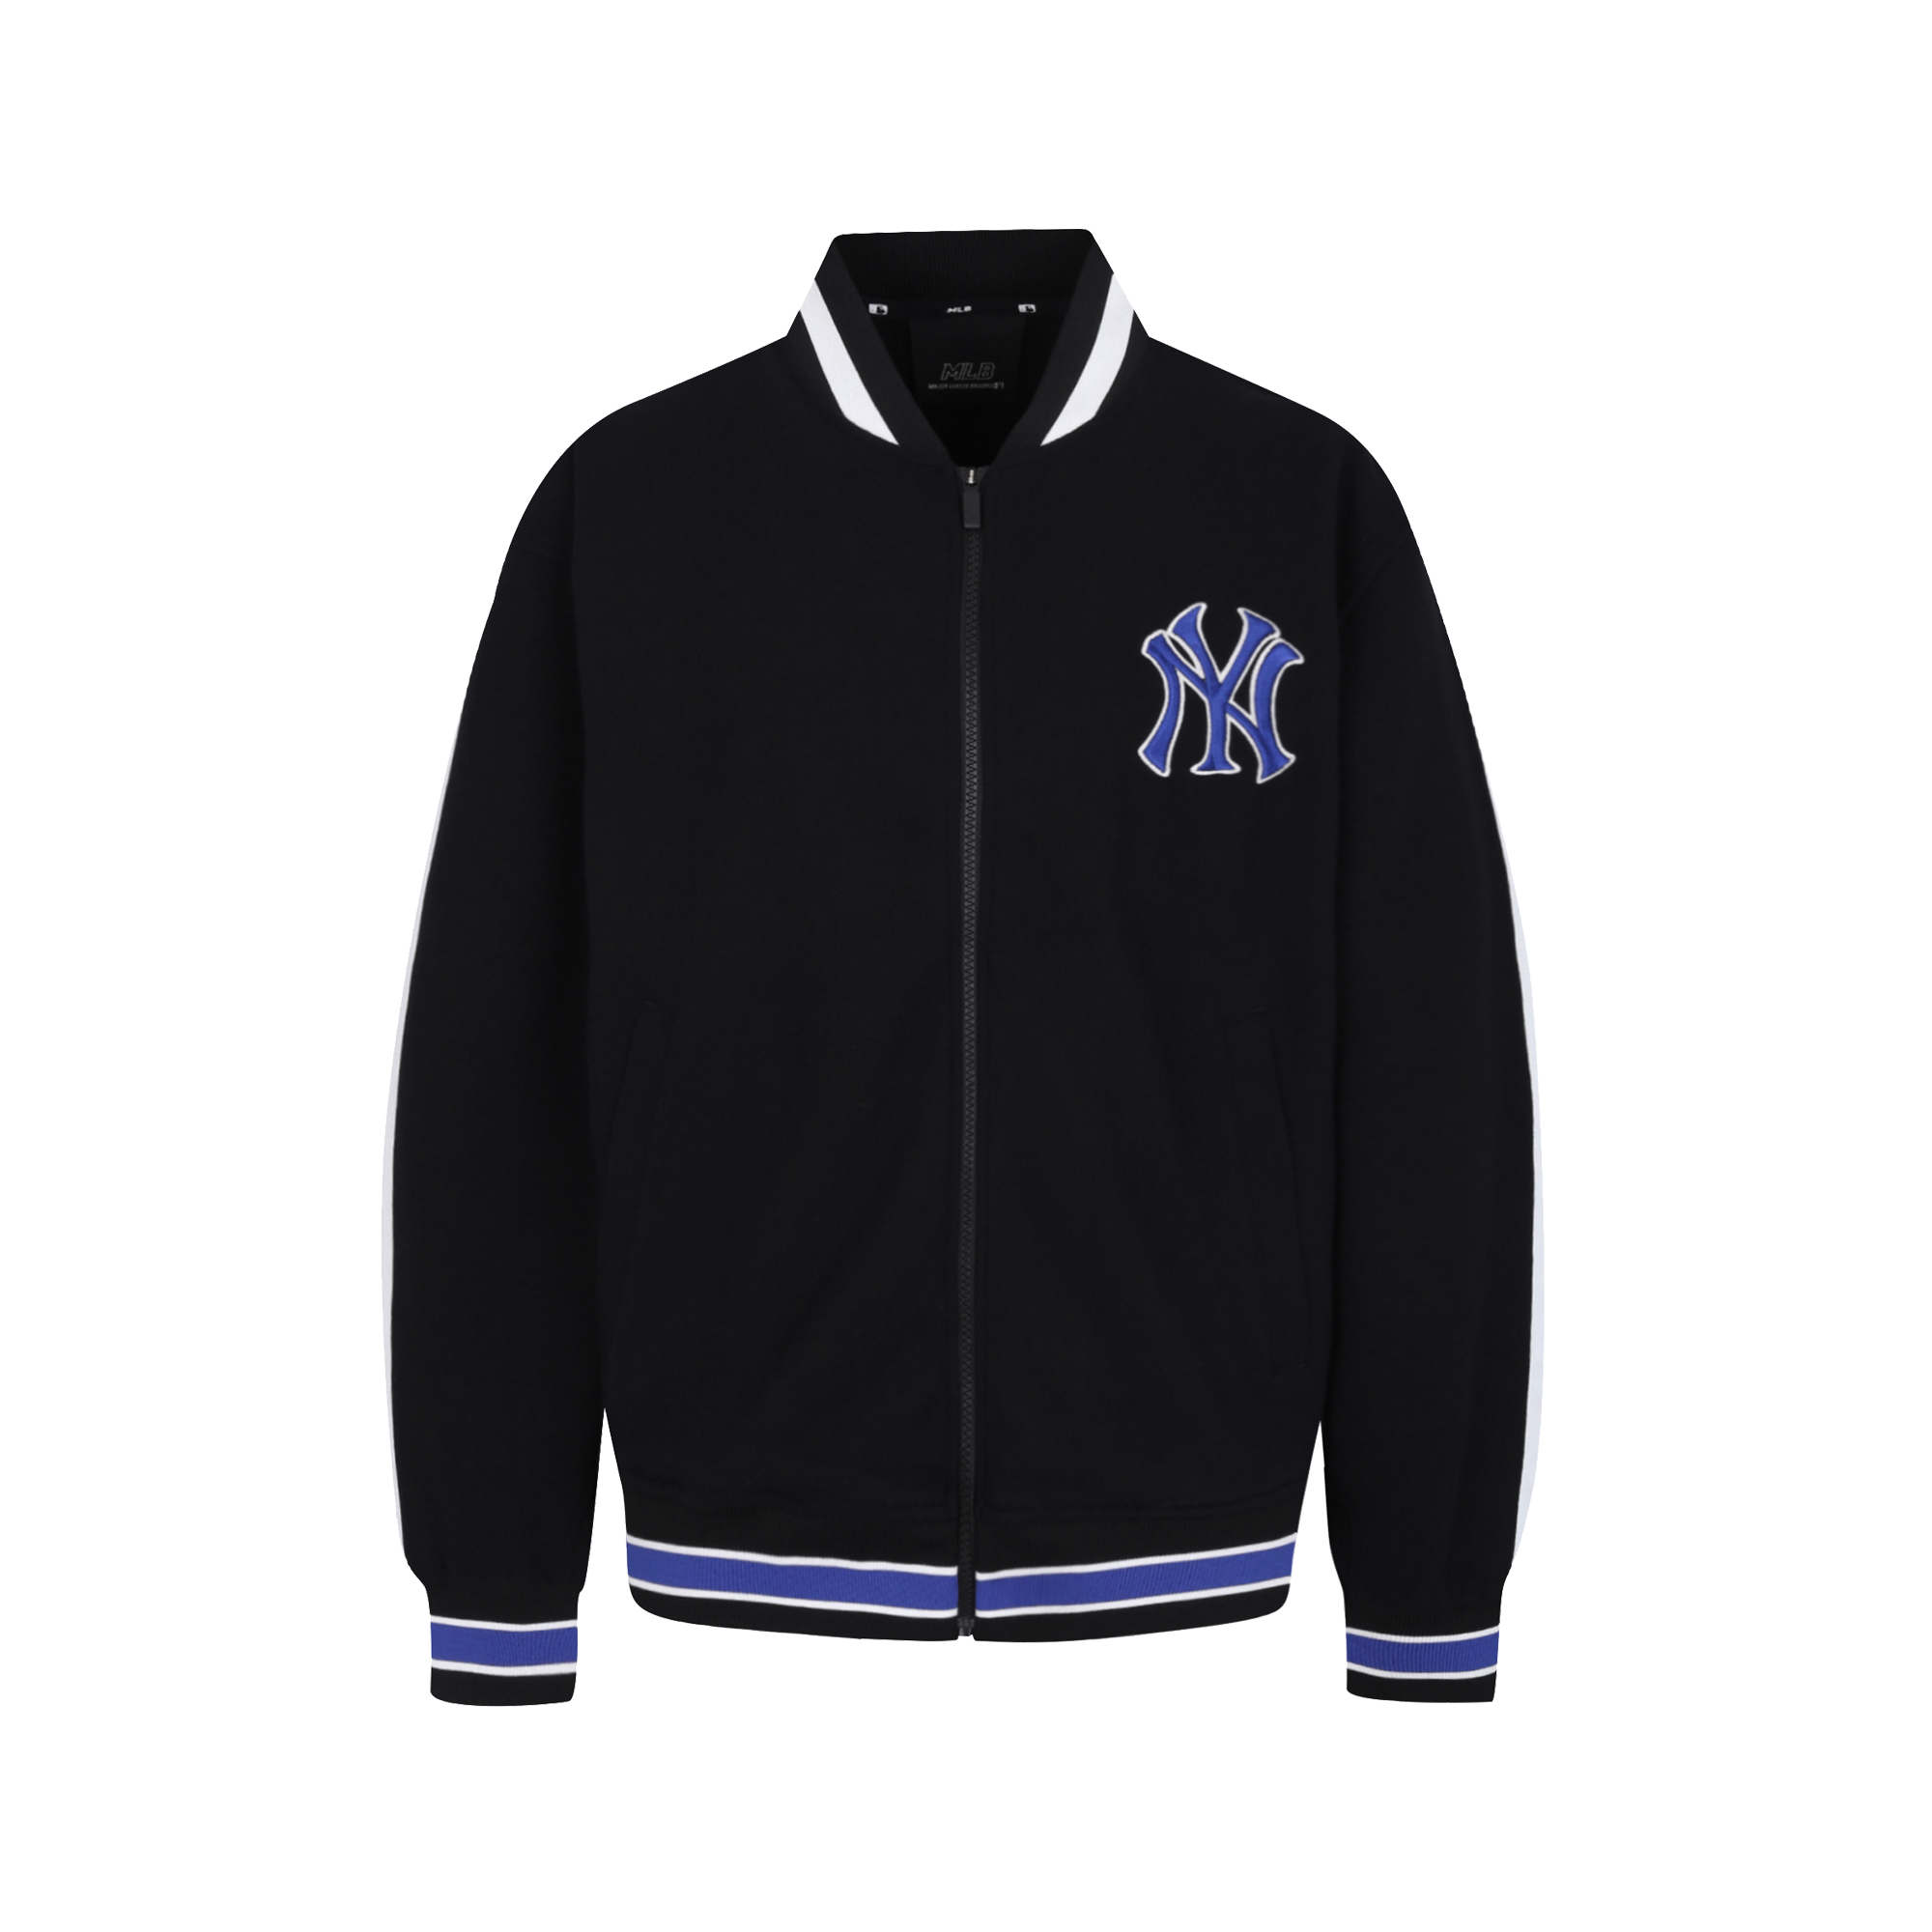 NEW YORK YANKEES TAPING MONSTER JACKET